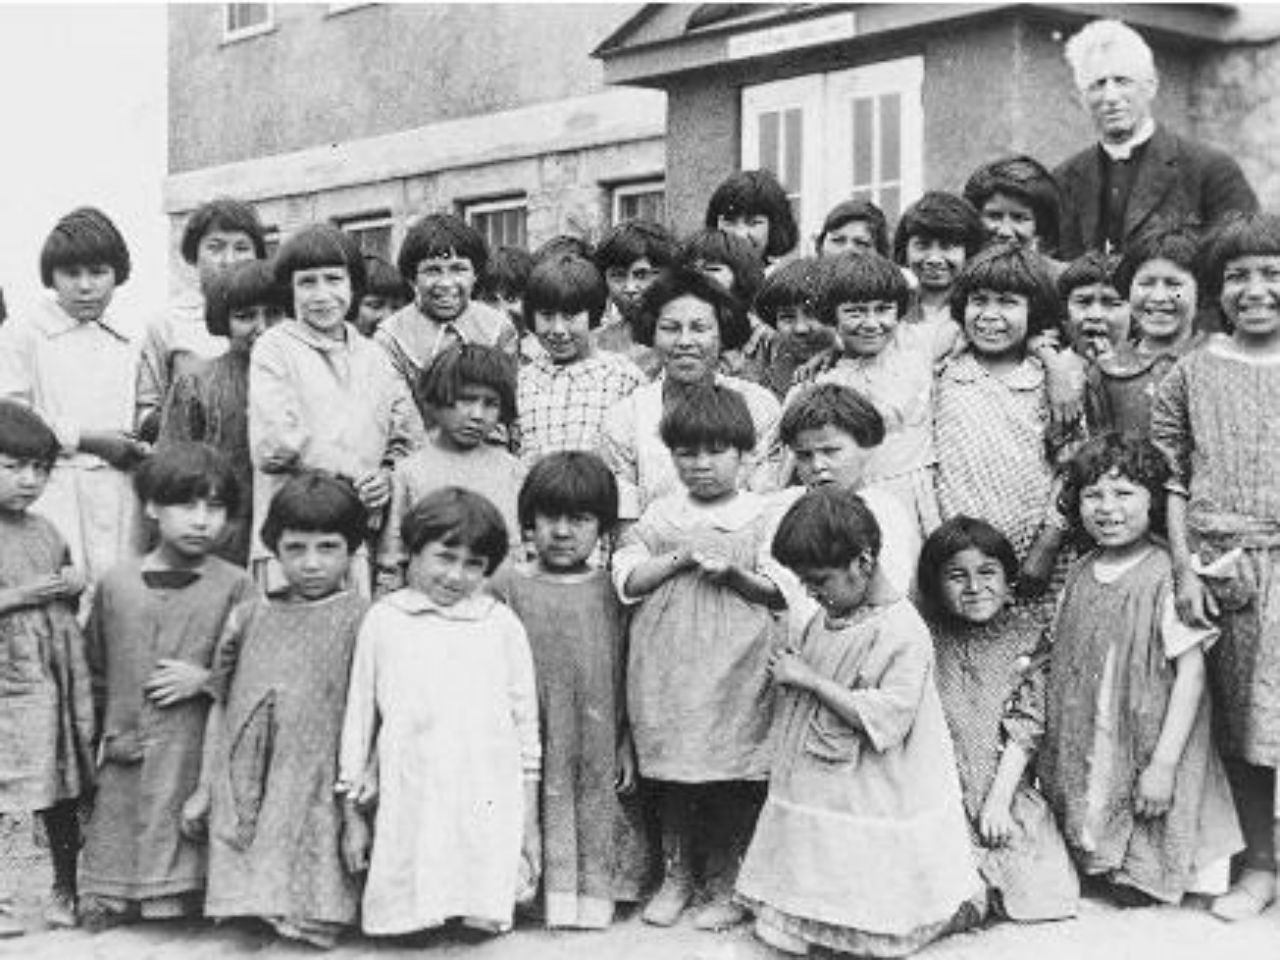 residential schools a legacy of shame Residential schools, a legacy of shame 2808 words | 12 pages sub-humans savages with no religion, intelligence, or right to live this general idea has carried through-out the history of our supposedly great country canada this essay will examine the residential school system in depth.